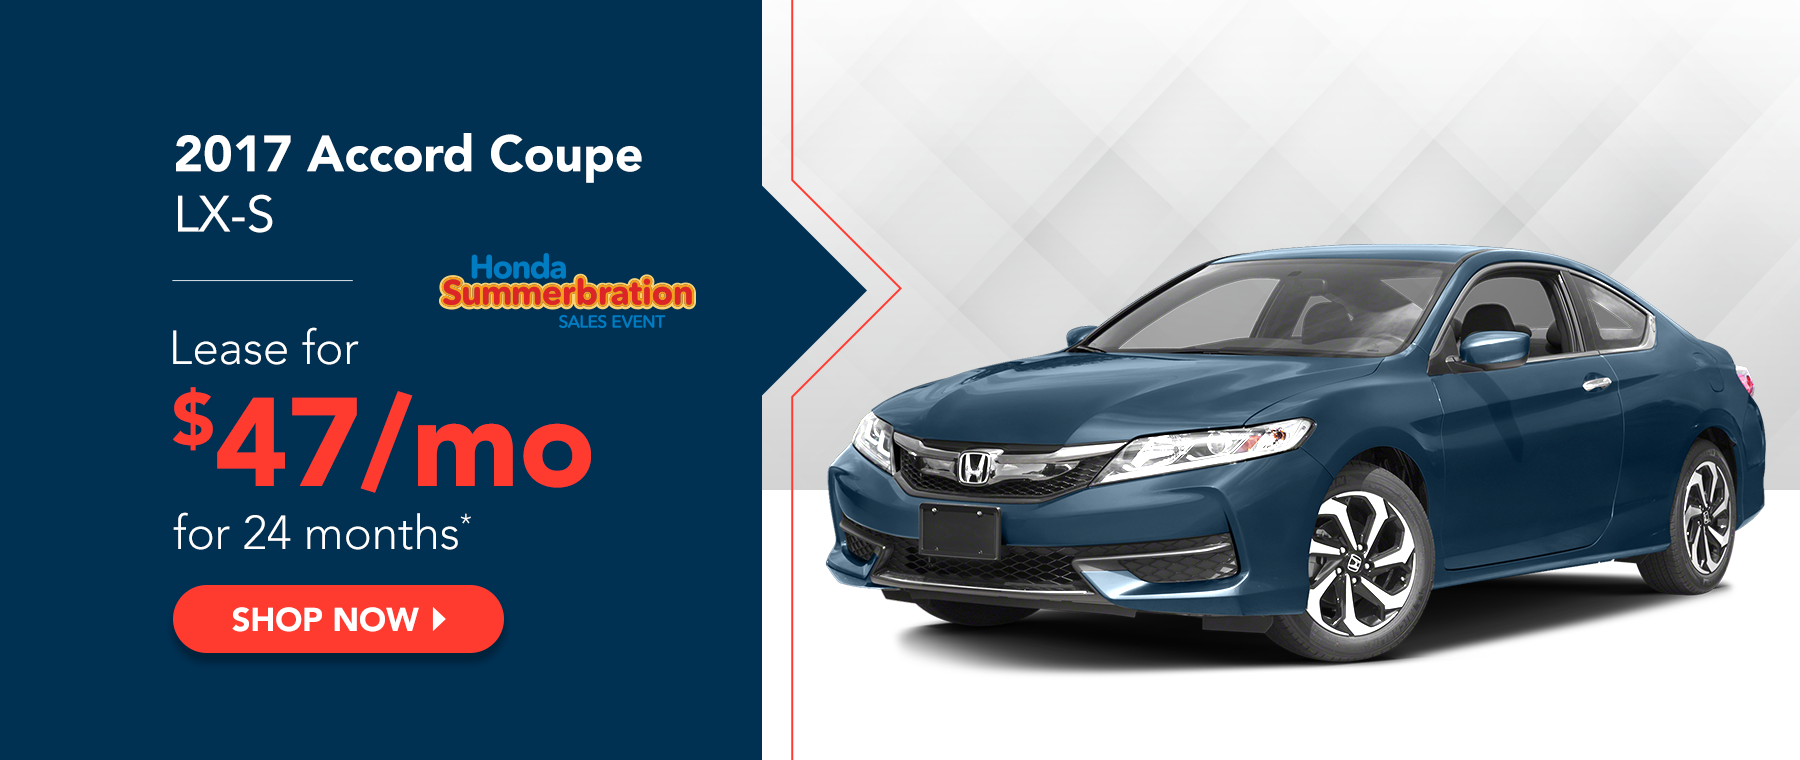 2017 Accord Coupe LX-S - Honda Summerbration Sales Event